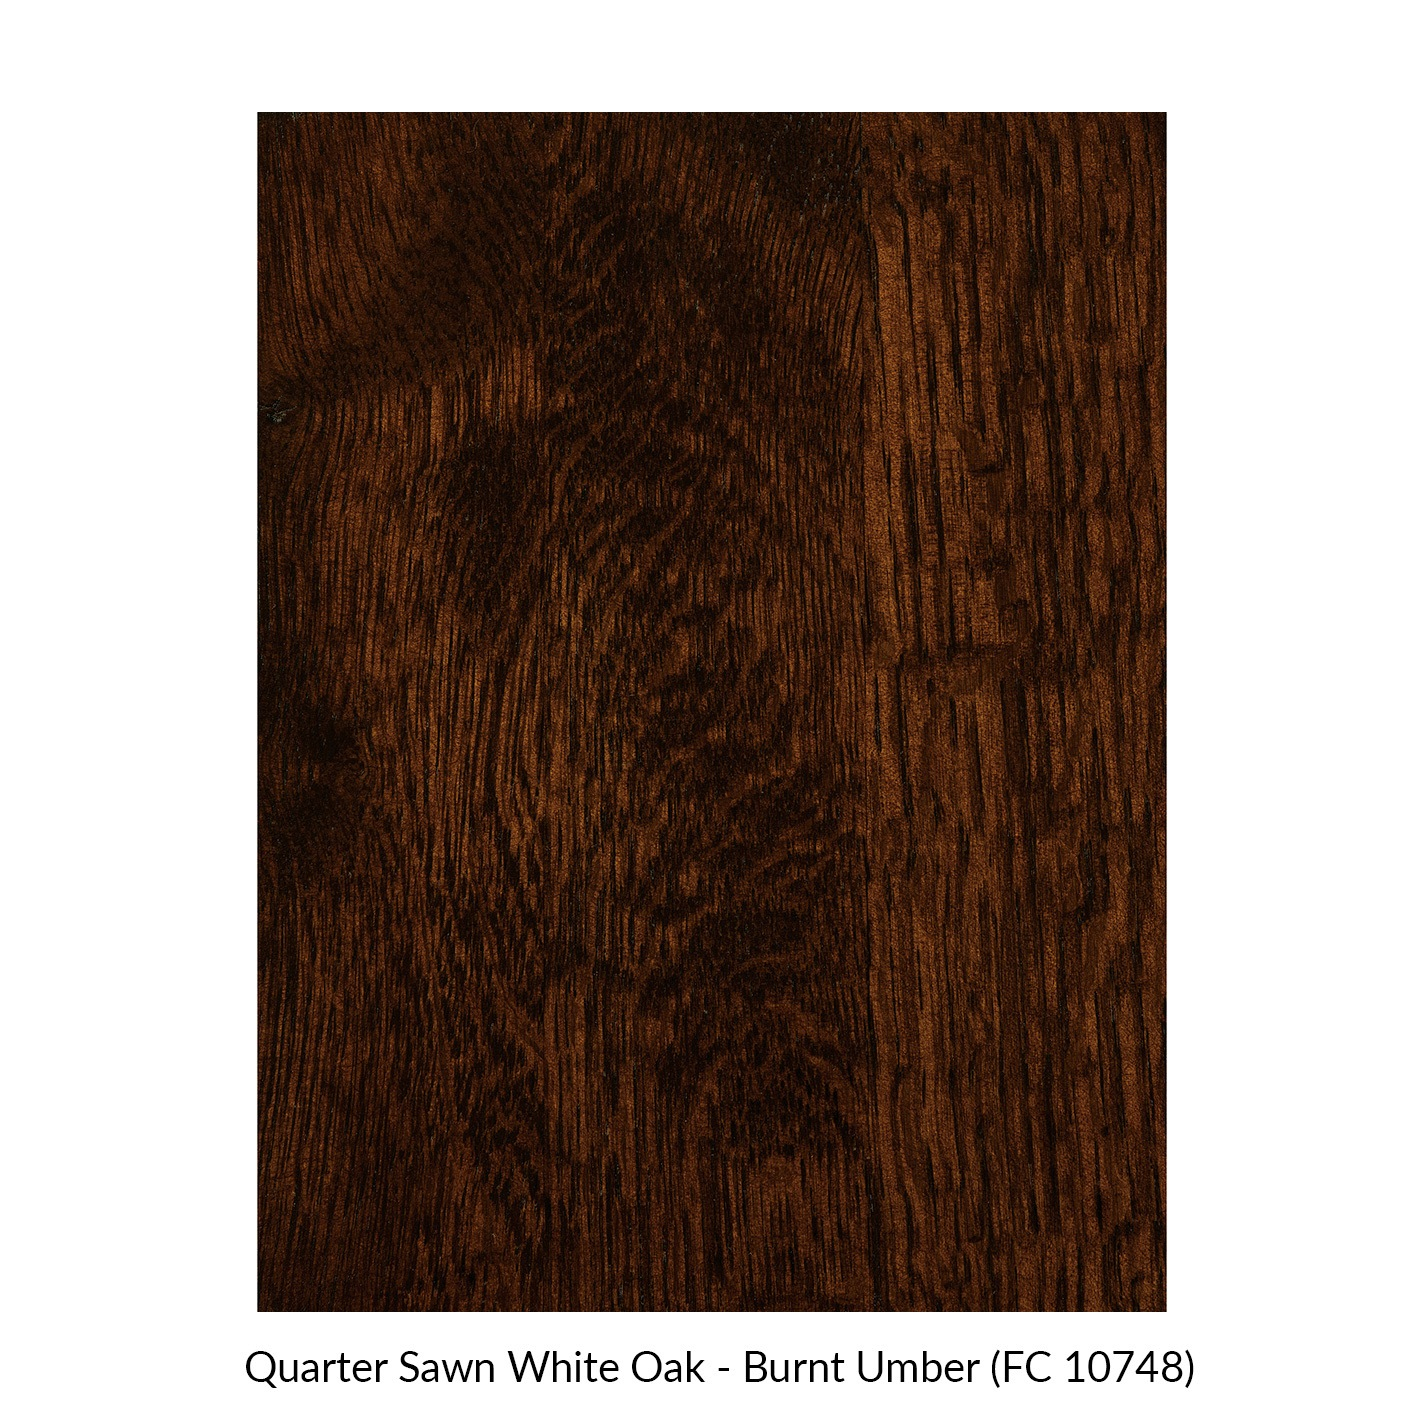 spectrum-quarter-sawn-white-oak-burnt-umber-fc-10748.jpg